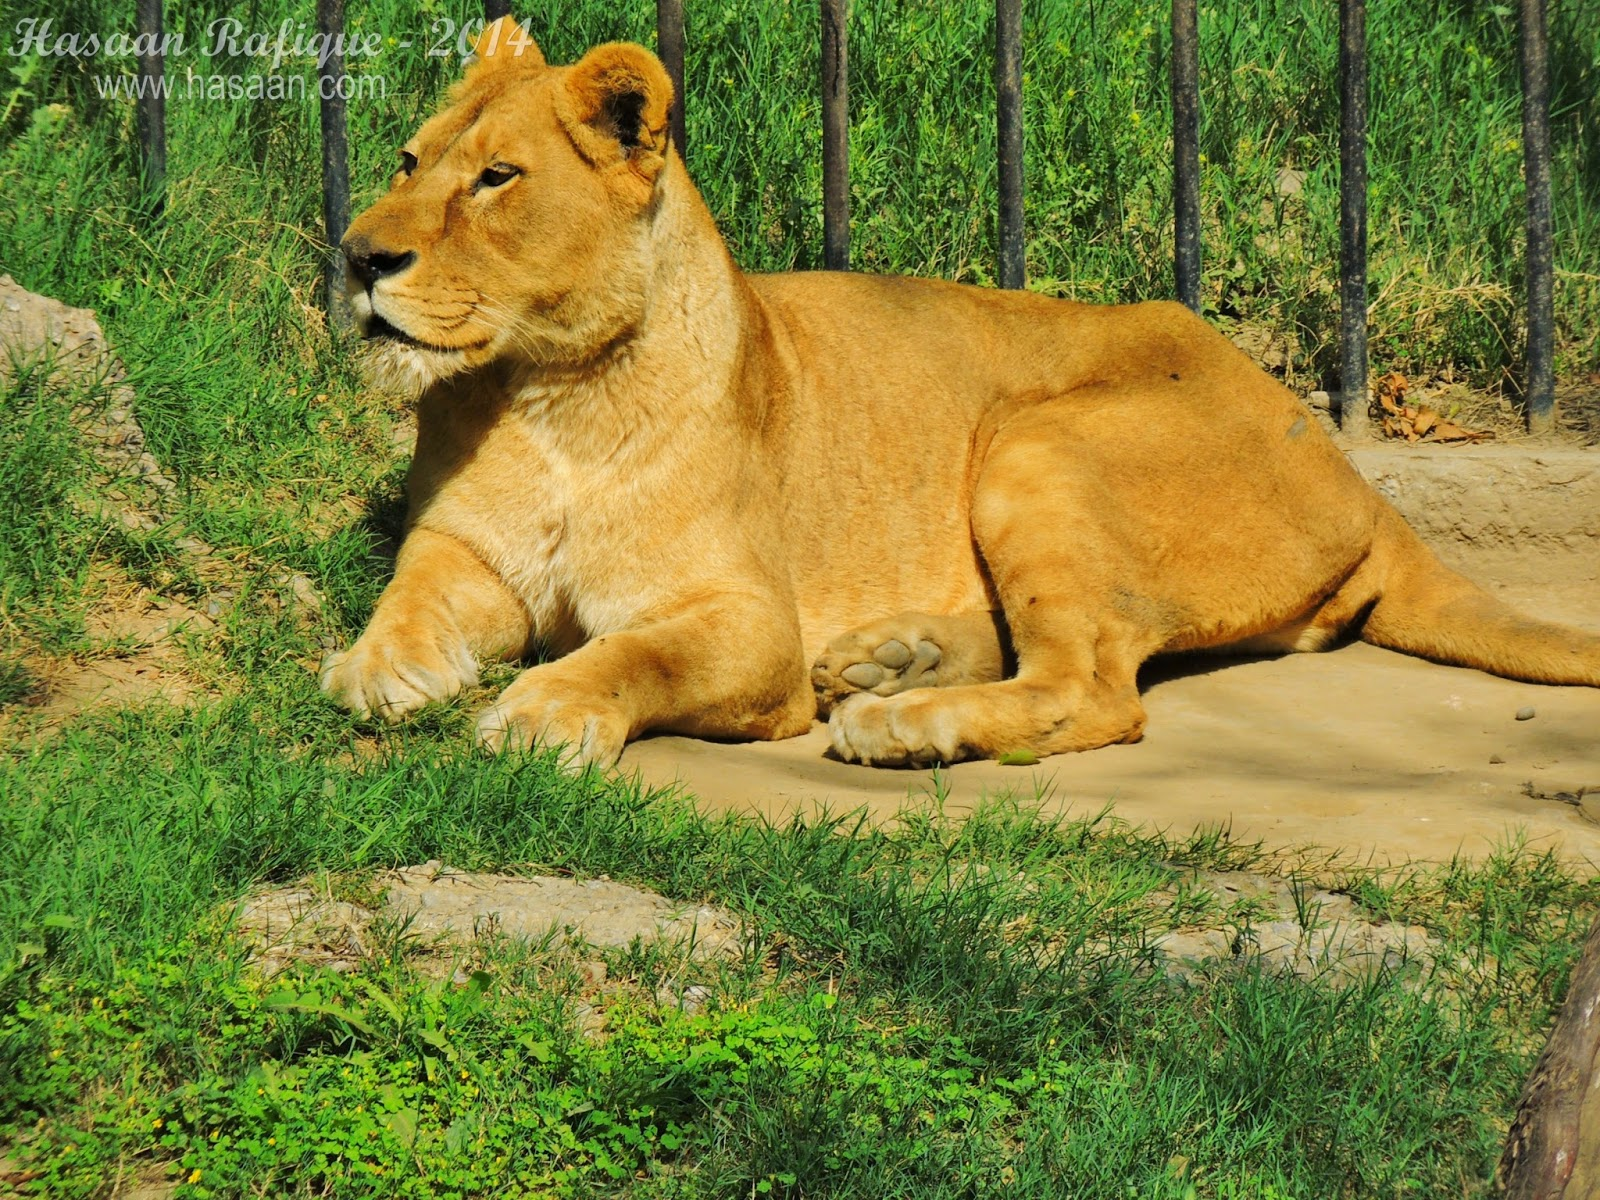 A lioness sitting in the green.